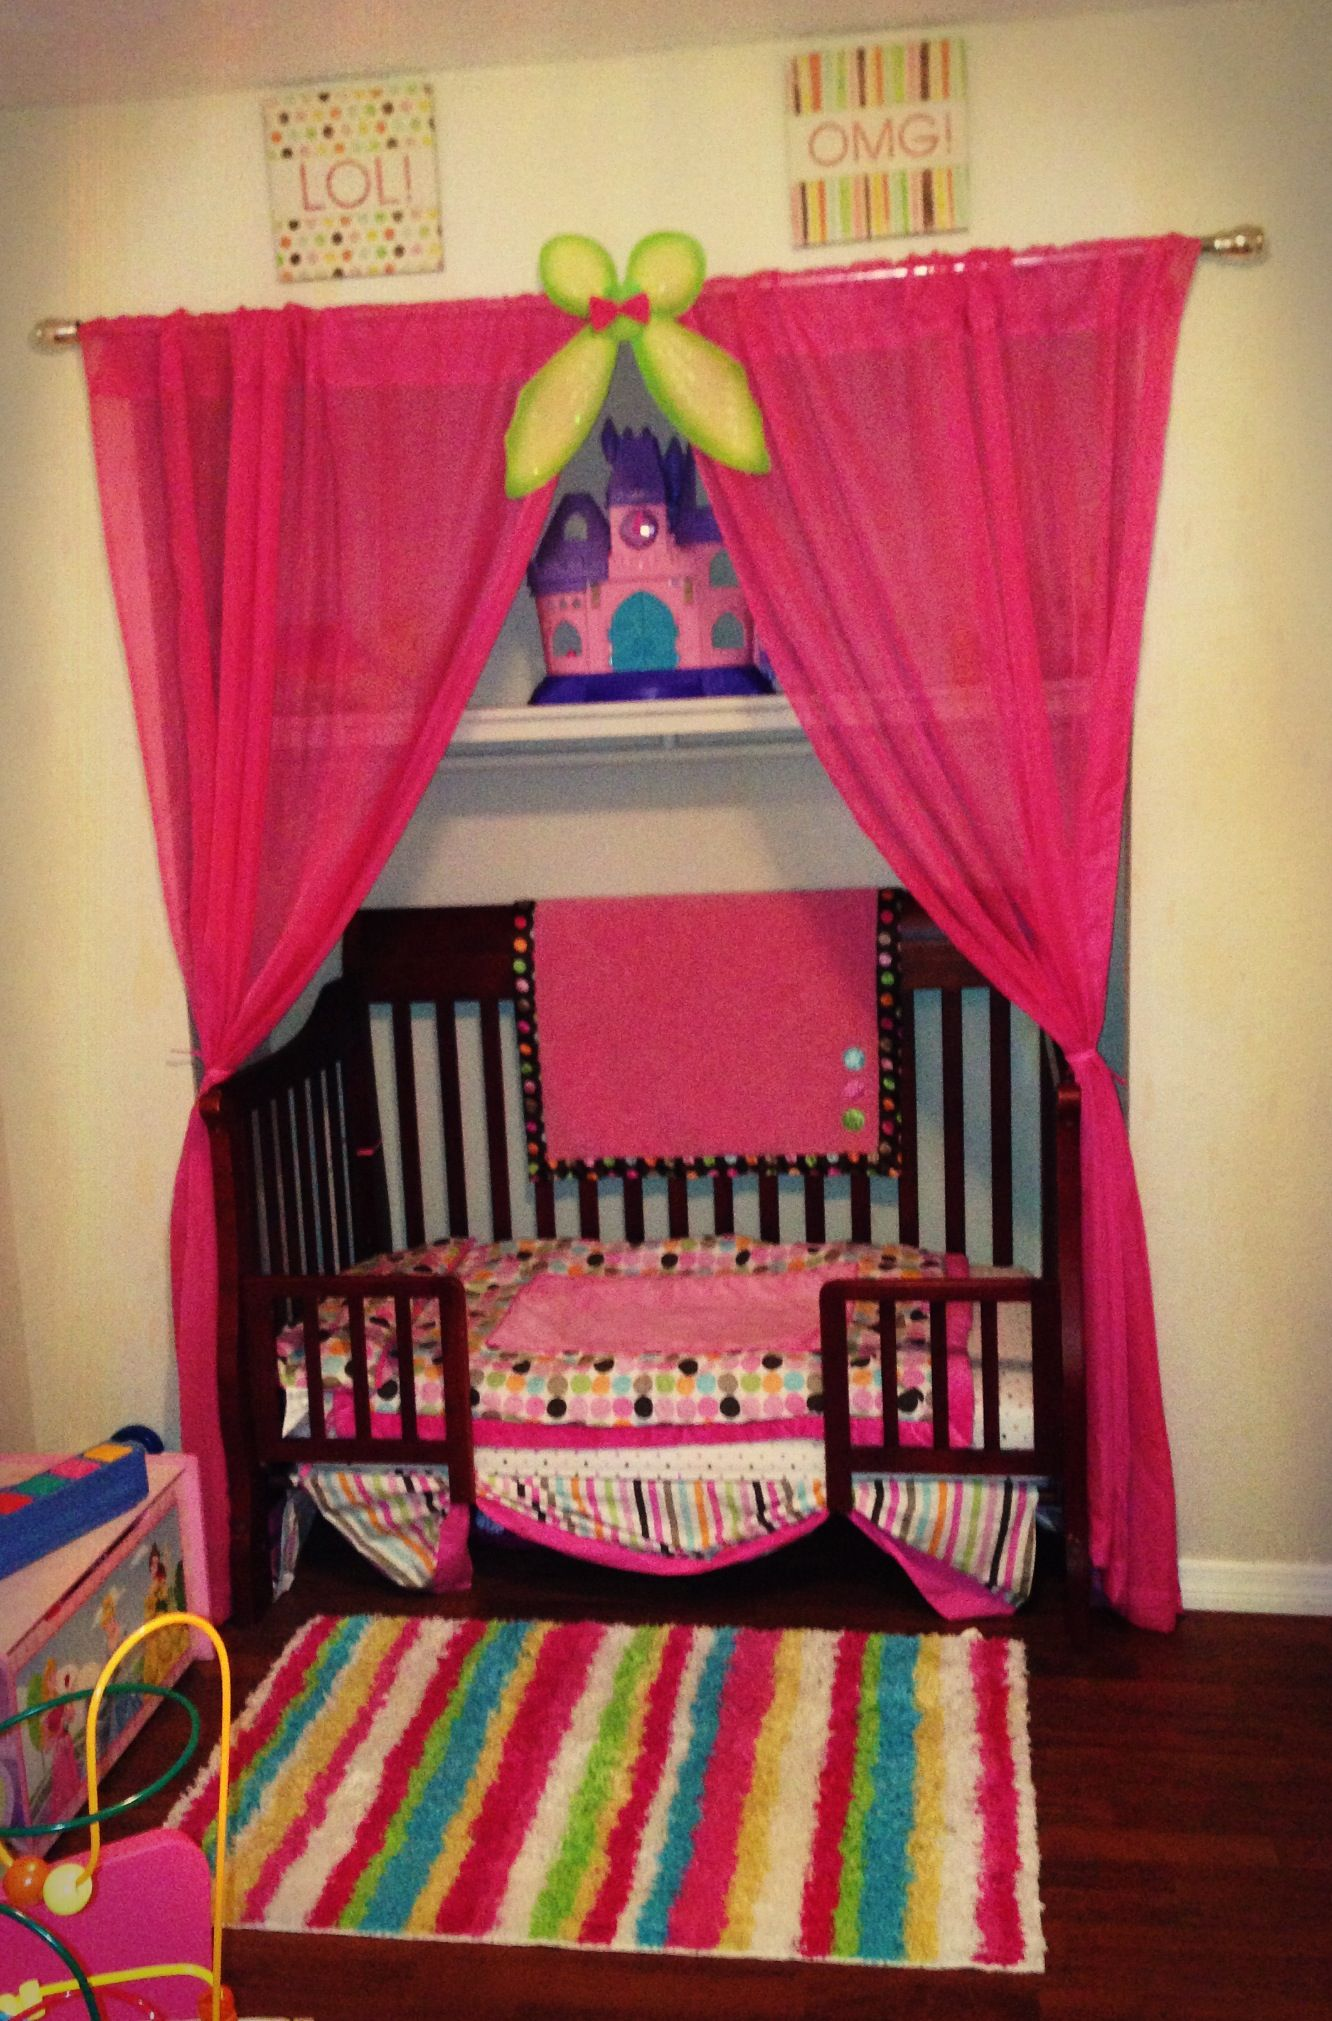 Pin By Jessica Matthews On For The Home Toddler Room Decor Diy Toddler Bed Bed In Closet